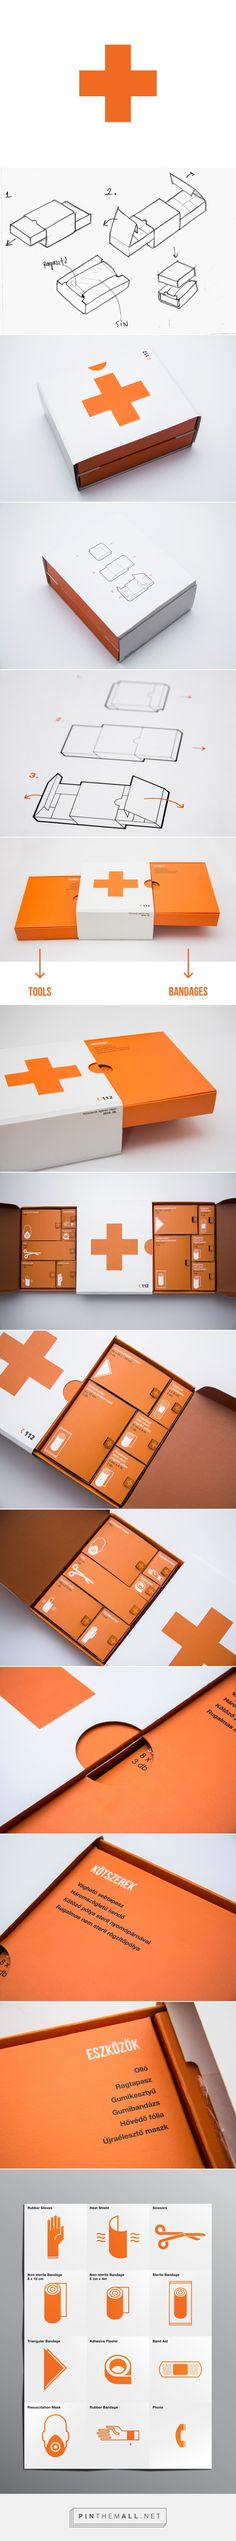 First Aid Kit Redesigned (Student Project) on Packaging of the World - Creative Package Design Gallery. - a grouped images picture Drug Packaging, Medical Packaging, Print Packaging, Board Game Design, Leaflet Design, Medical Design, Newsletter Design, Layout, First Aid Kit